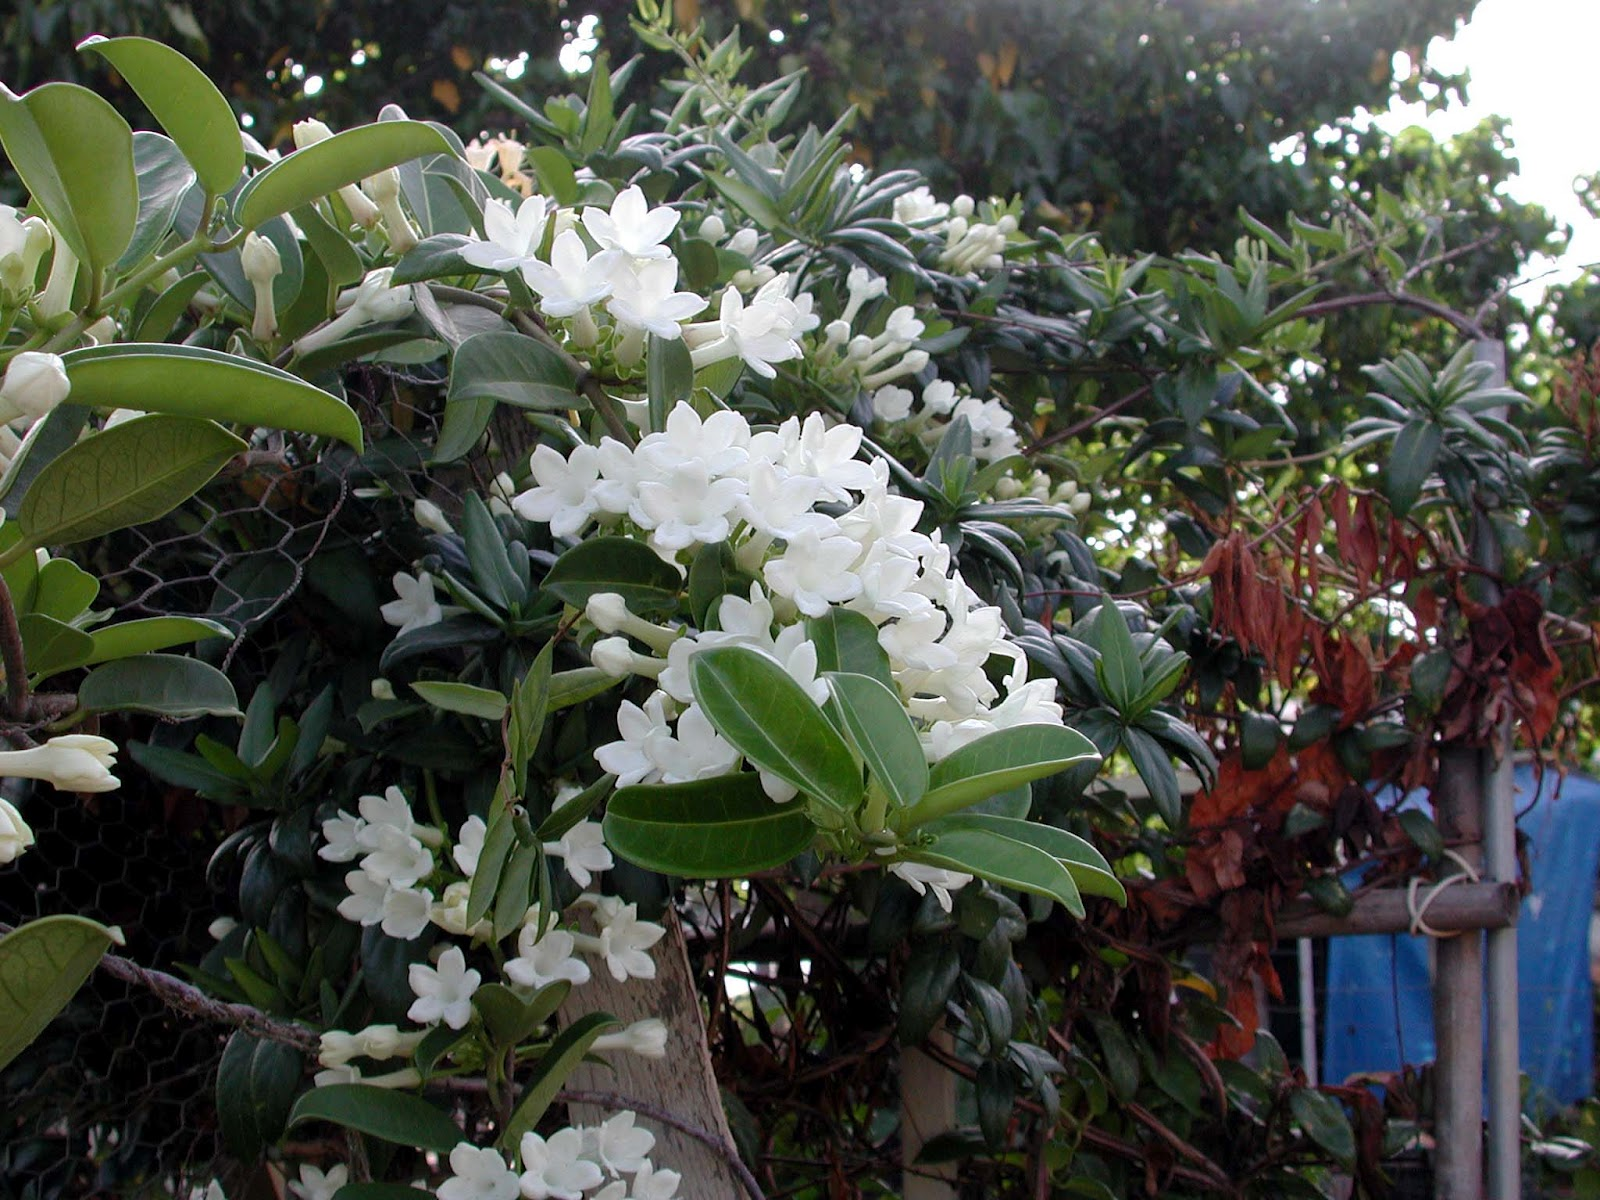 Stephanotis by any other name is marsdenia hawaii horticulture stephanotis do best when grown on some sort of support and the flowers are held up for izmirmasajfo